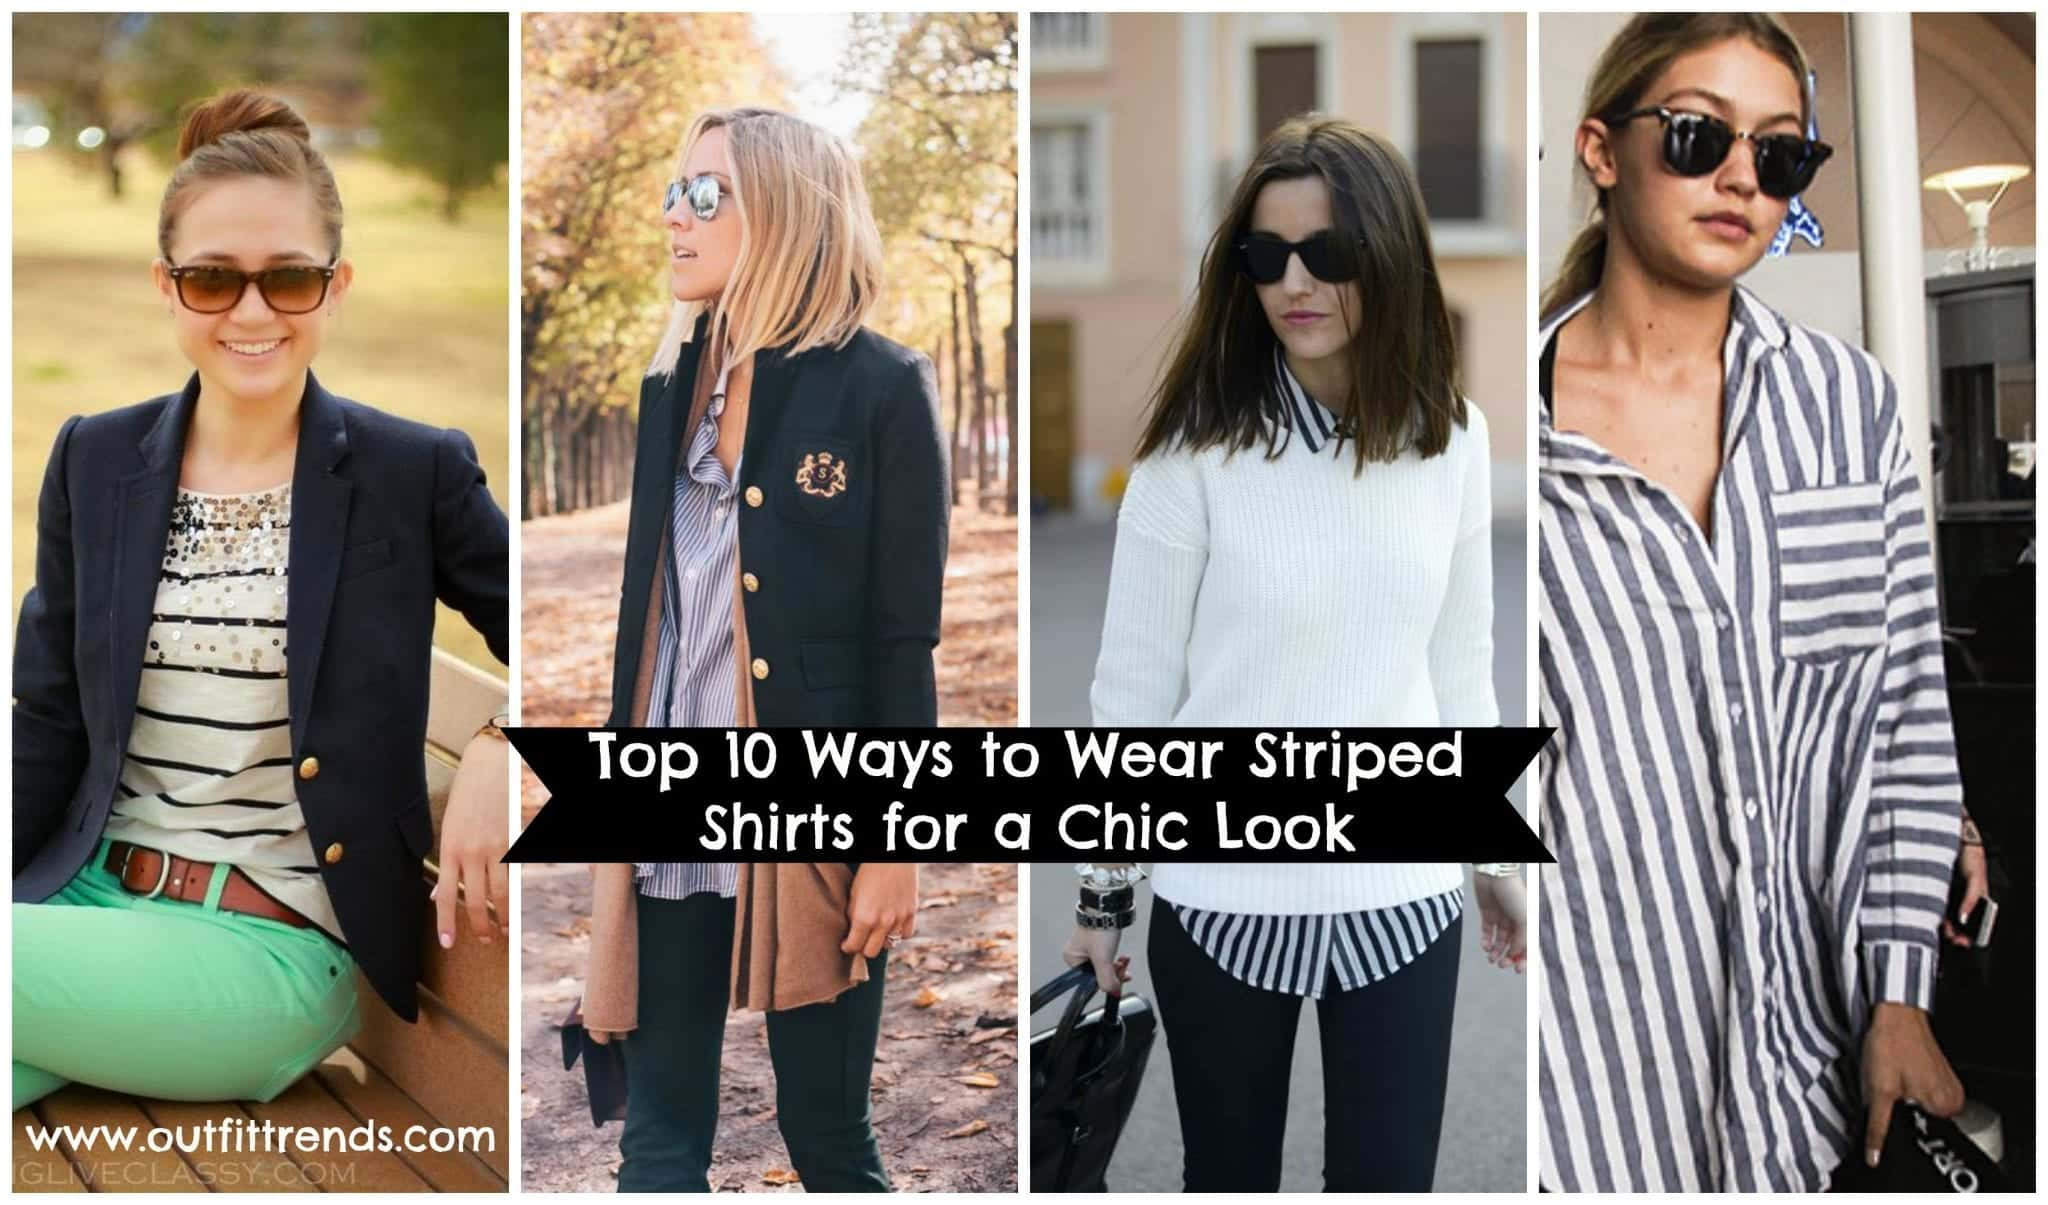 how-to-wear-striped-shirts Outfits with Striped Shirts-10 Ways to Wear Striped Shirts